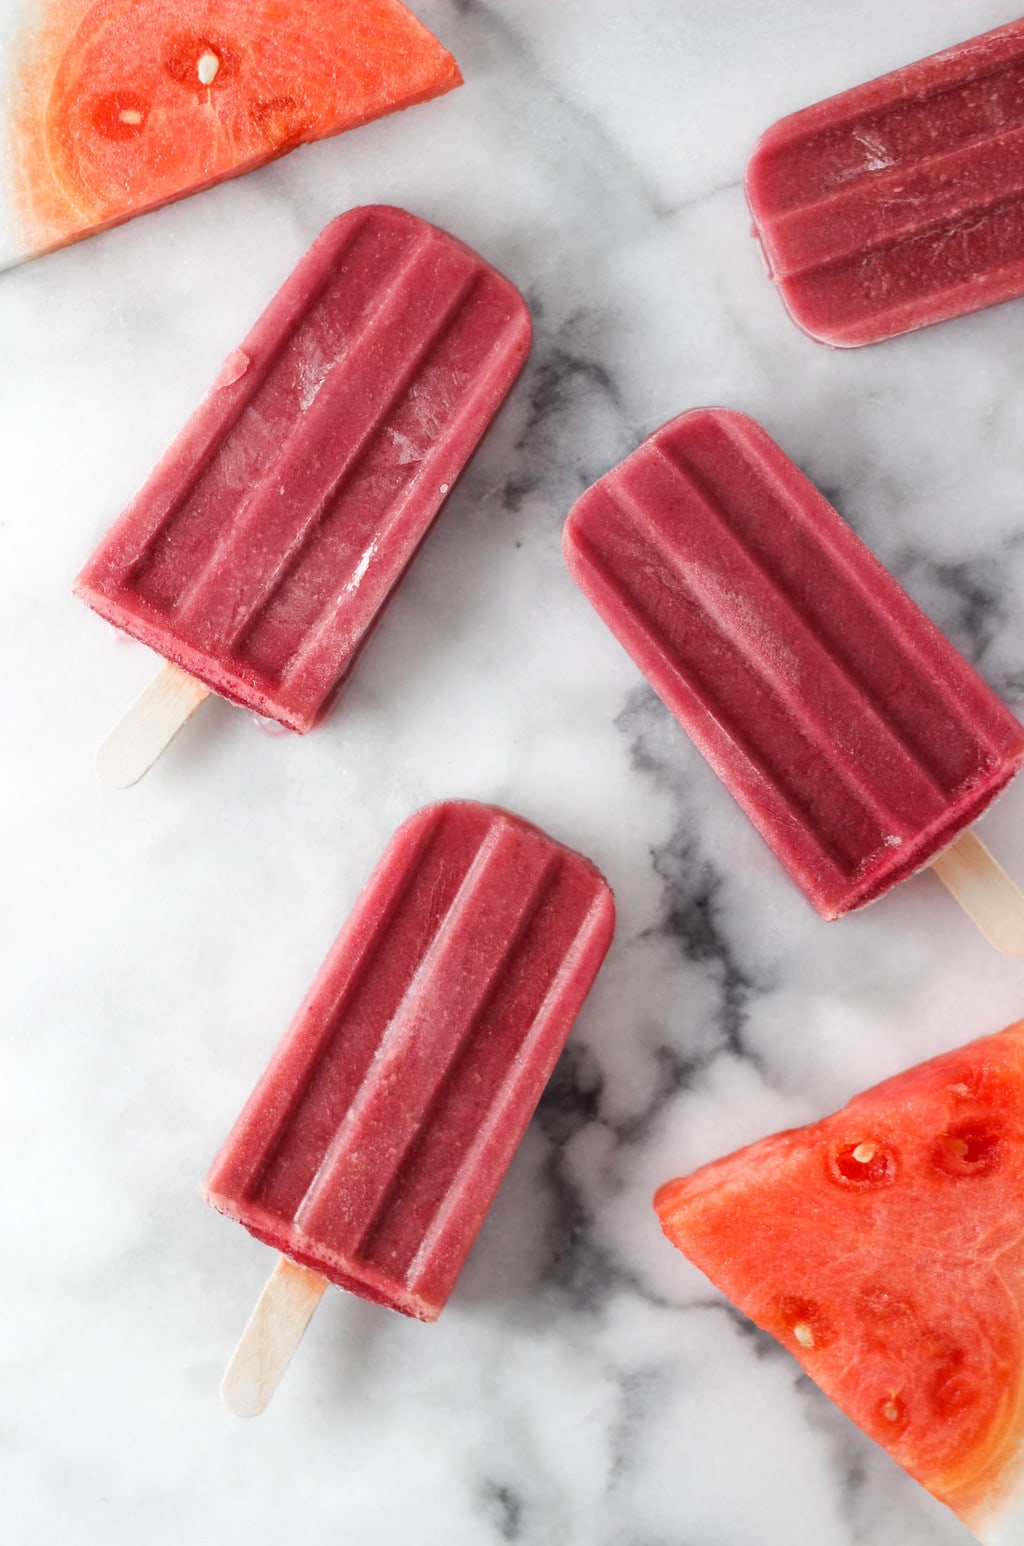 Cherry Watermelon Popsicle Recipe that is HEALTHY, EASY AND DELICIOUS! Super refreshing on a hot summer day! Make them today!